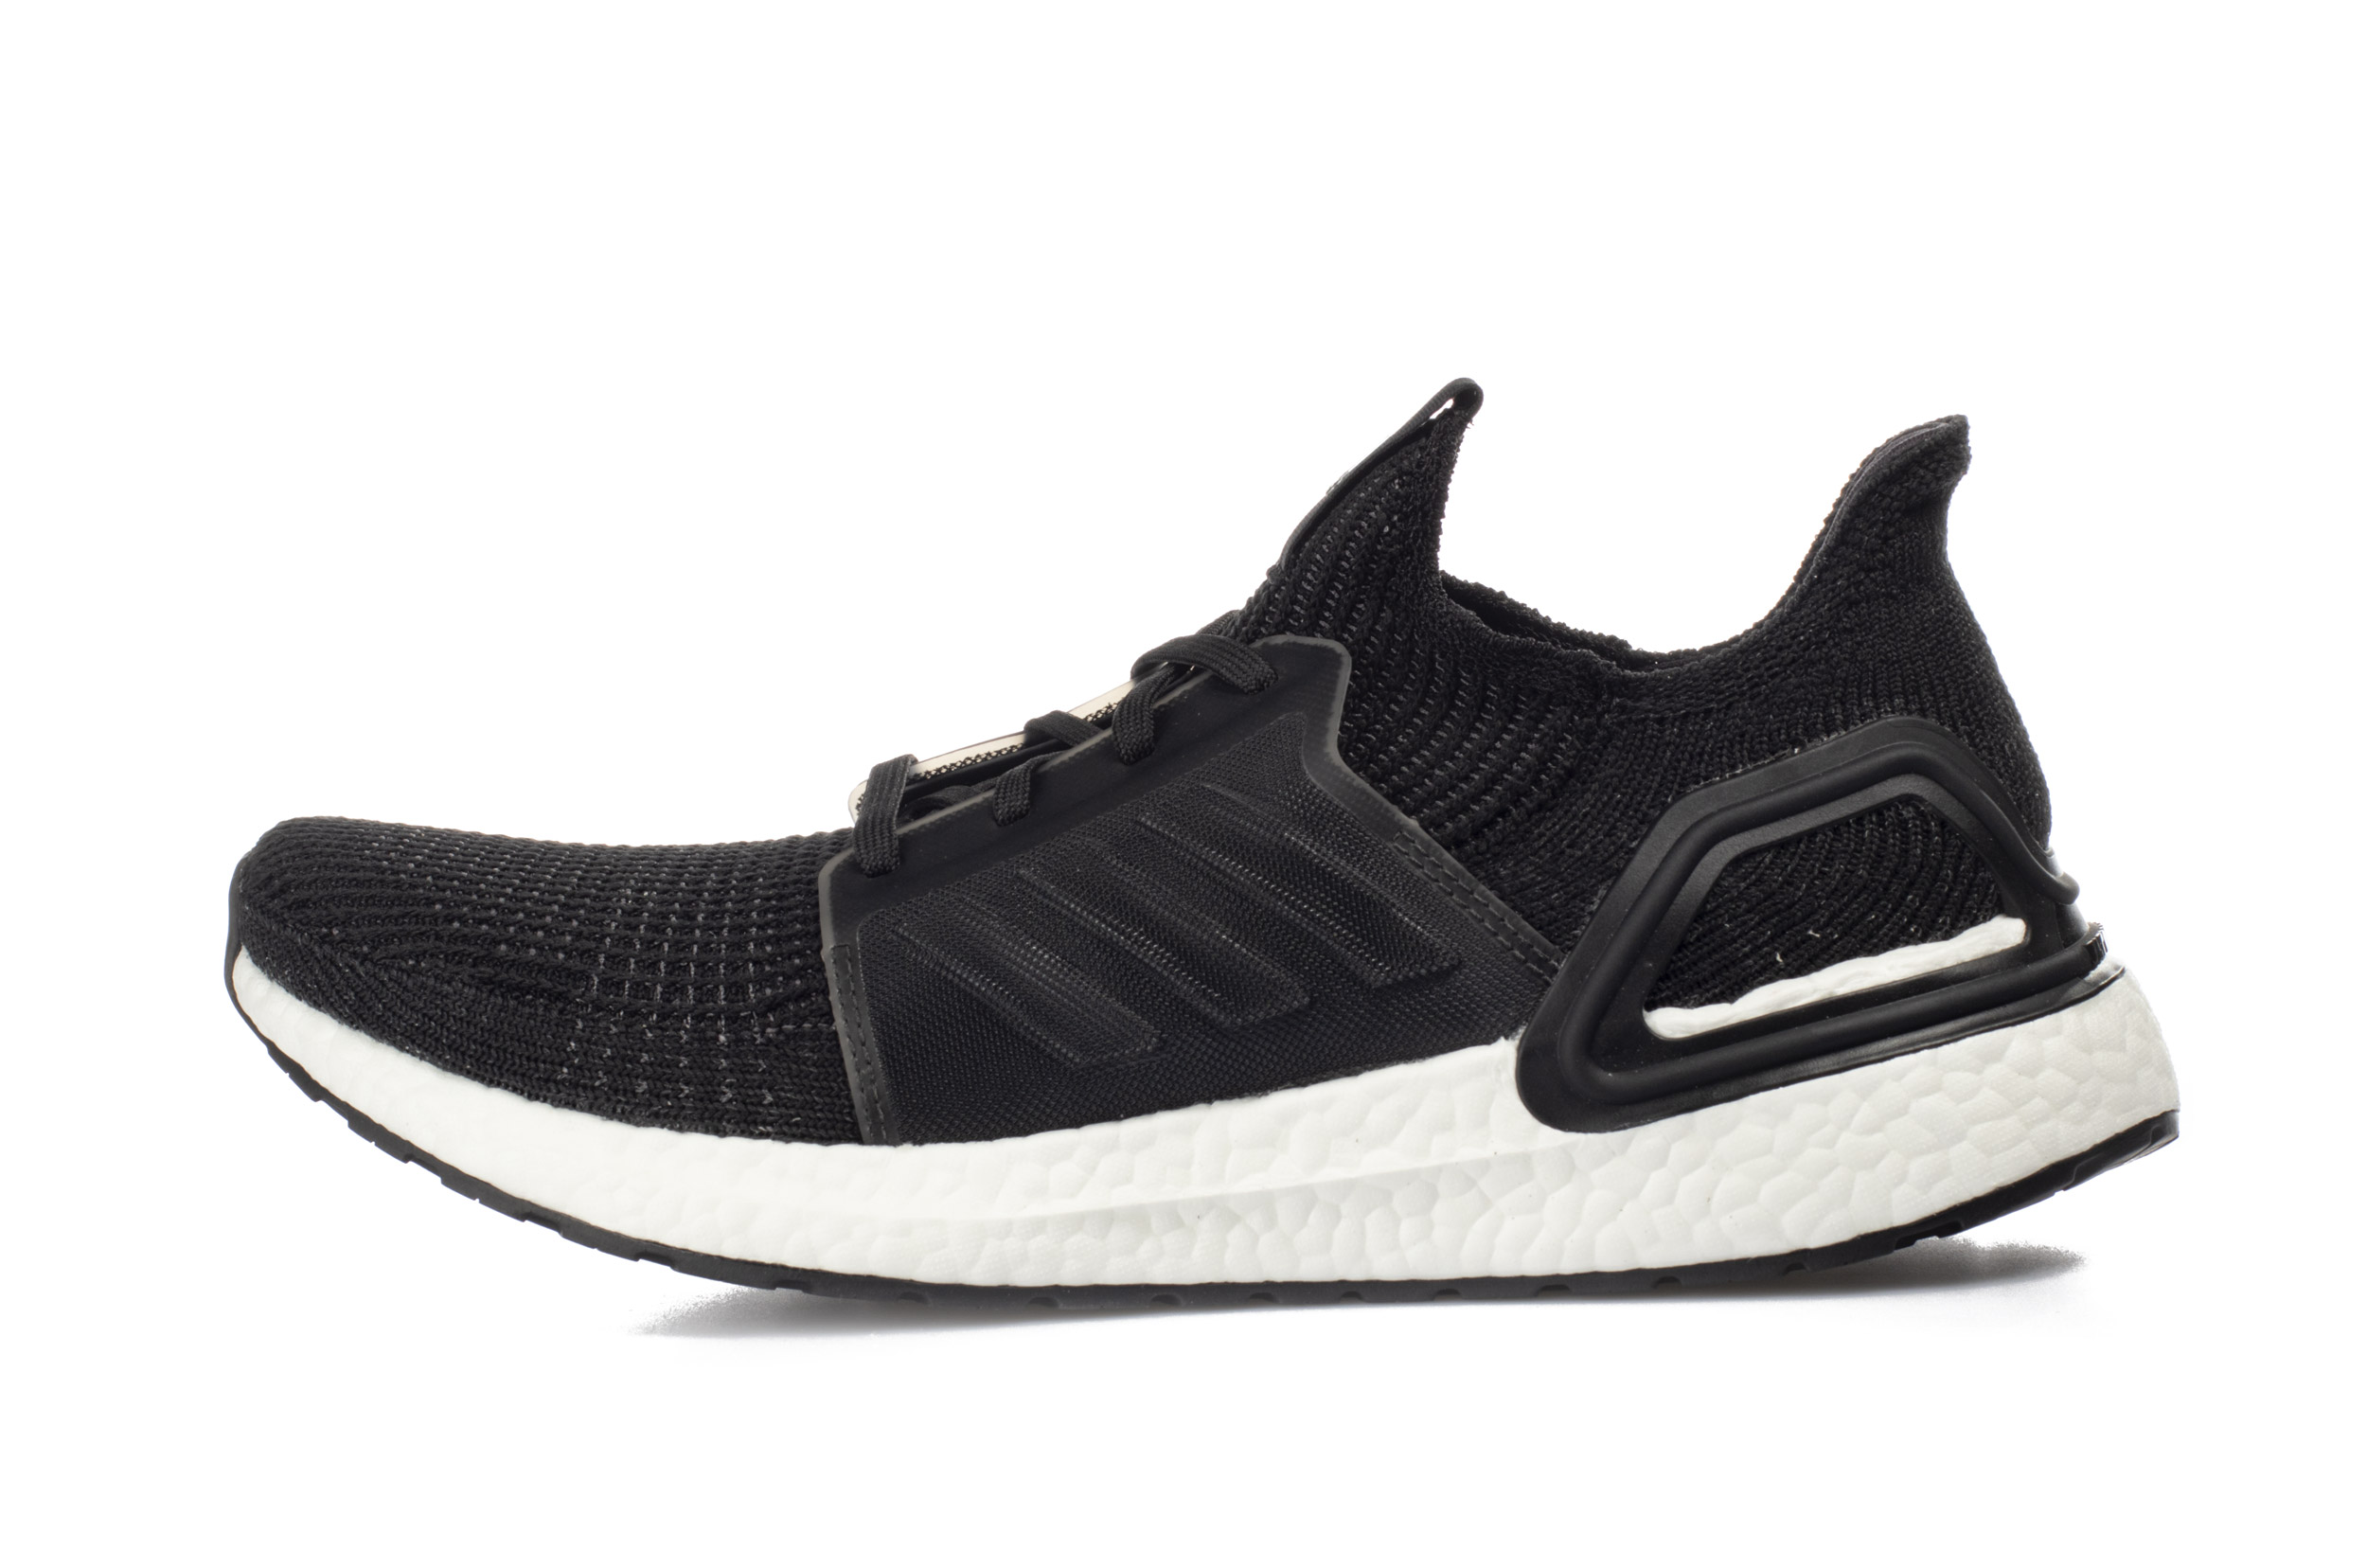 adidas Performance UltraBOOST 19 M G54009 Μαύρο